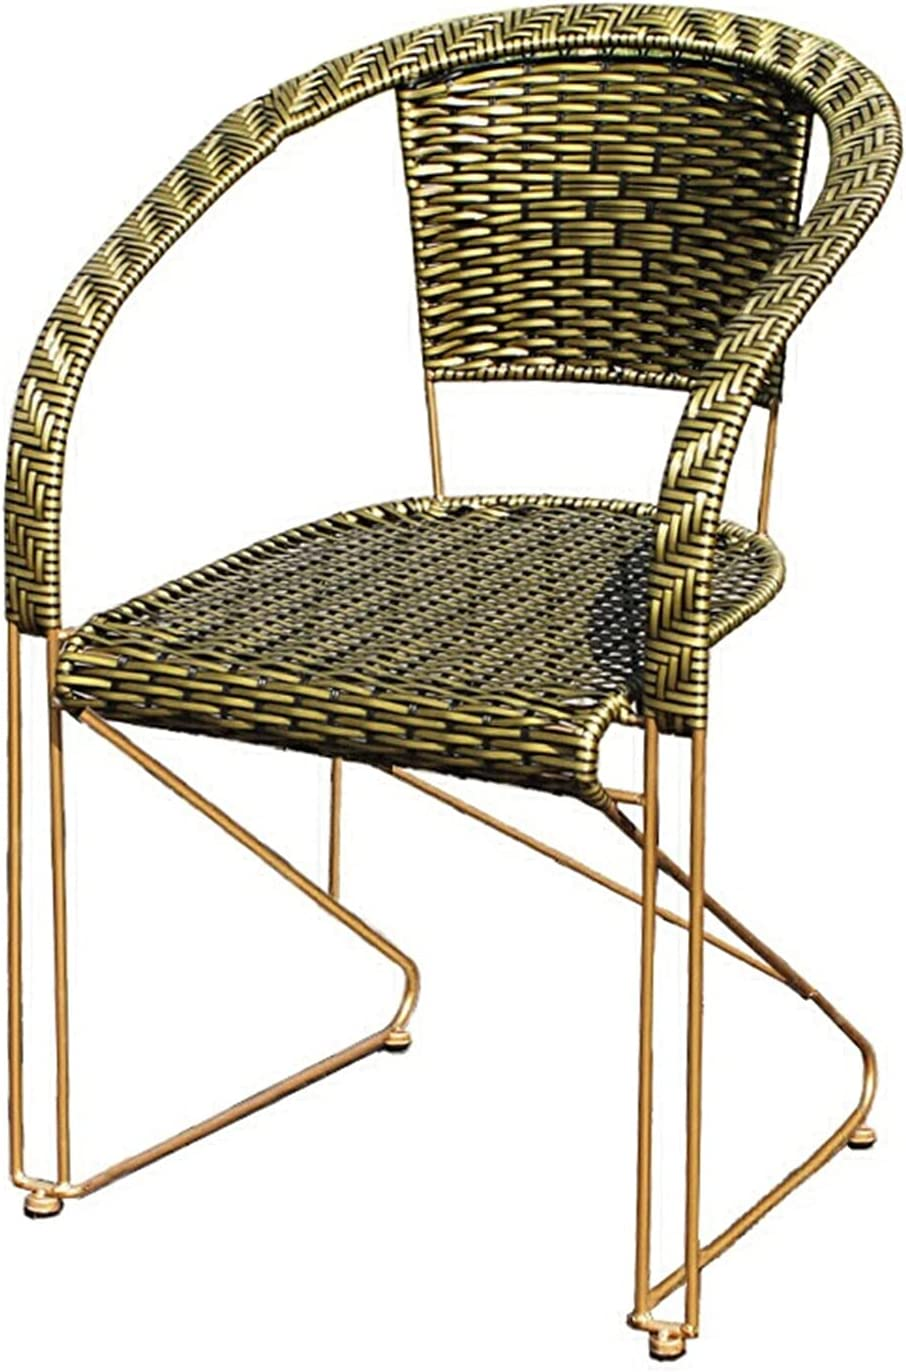 ZJDU All-Weather Wicker Chair, Wicker Stacking Chair,Metal Frame,Patio Balcony Furniture Dining Seats,Outdoor Dining Chair for Outside Patio Tables,Green